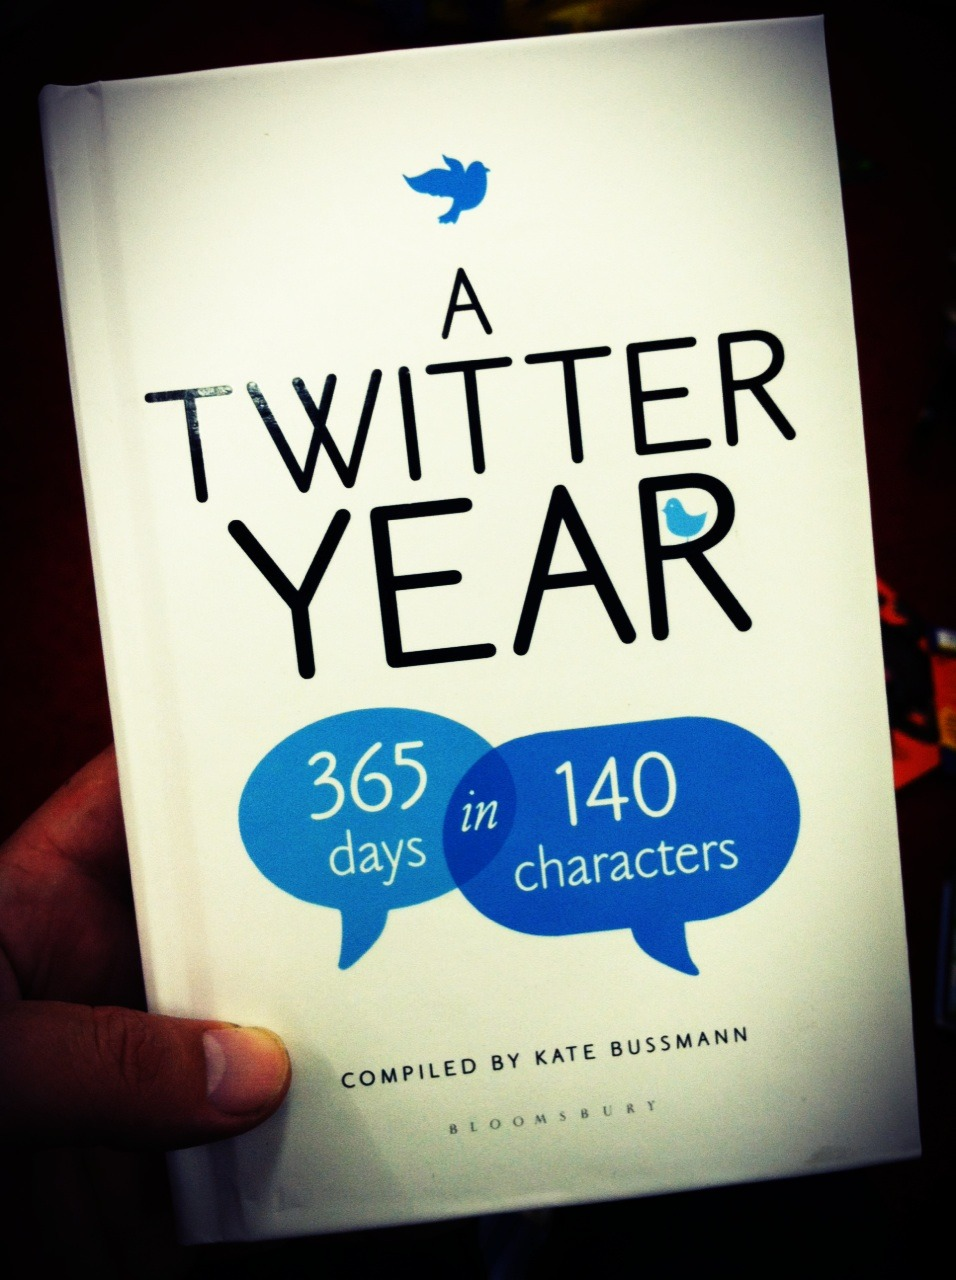 Reading tweets in a book. Wait, wtf?!